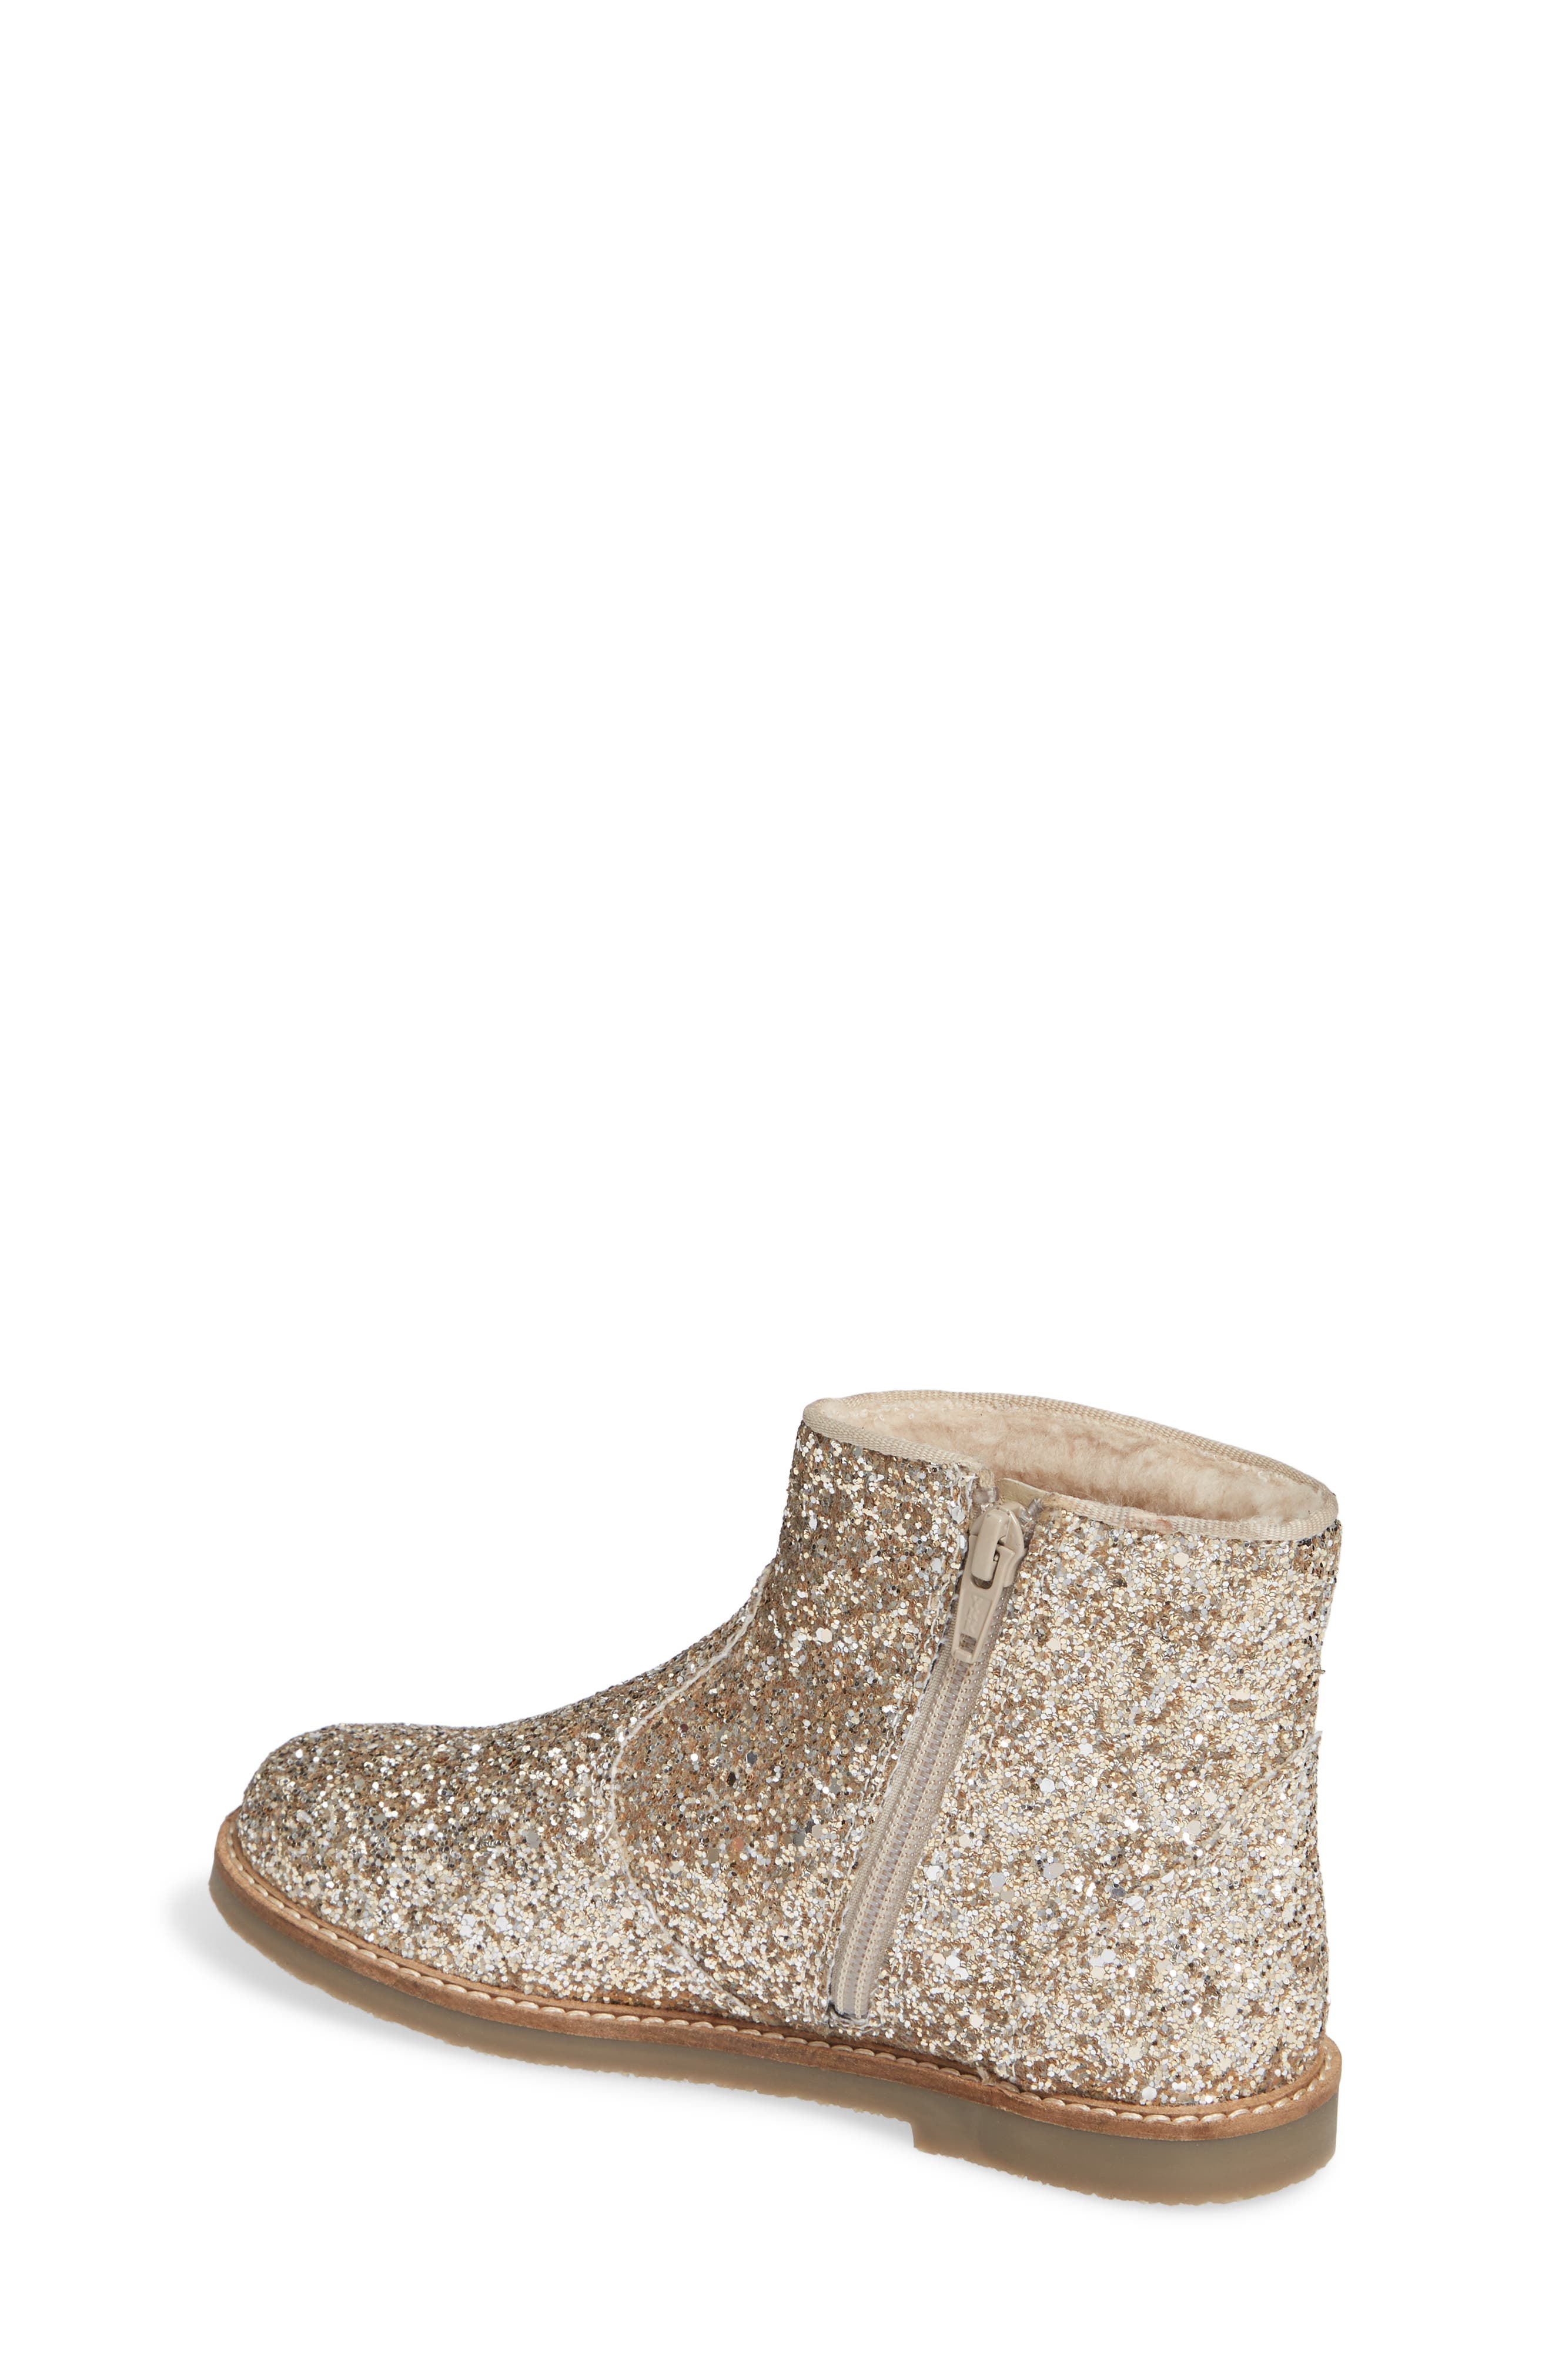 Glitter Booties,                             Alternate thumbnail 2, color,                             SILVER/ GOLD